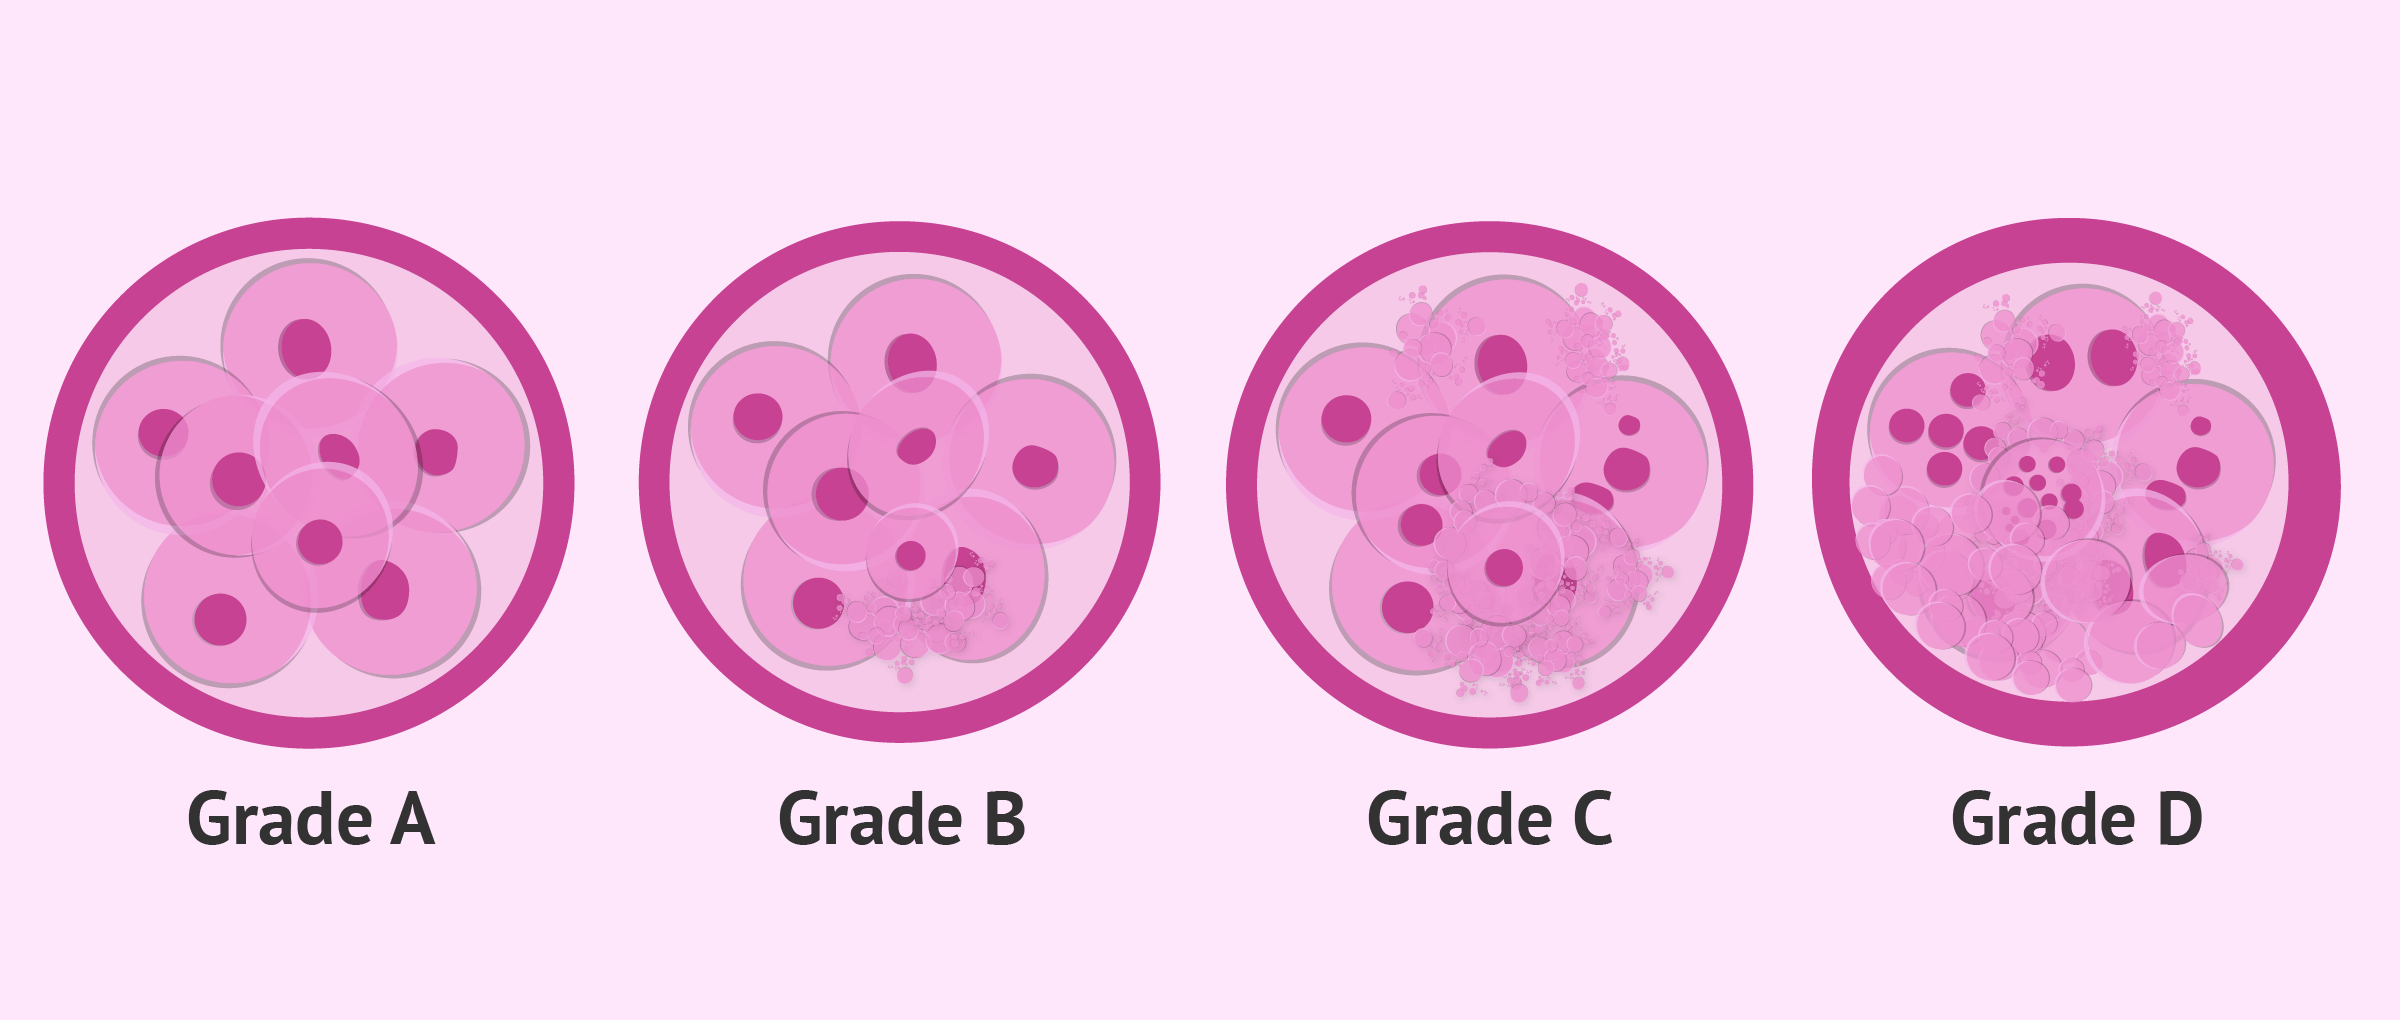 Classification criteria and categories according to the embryo quality